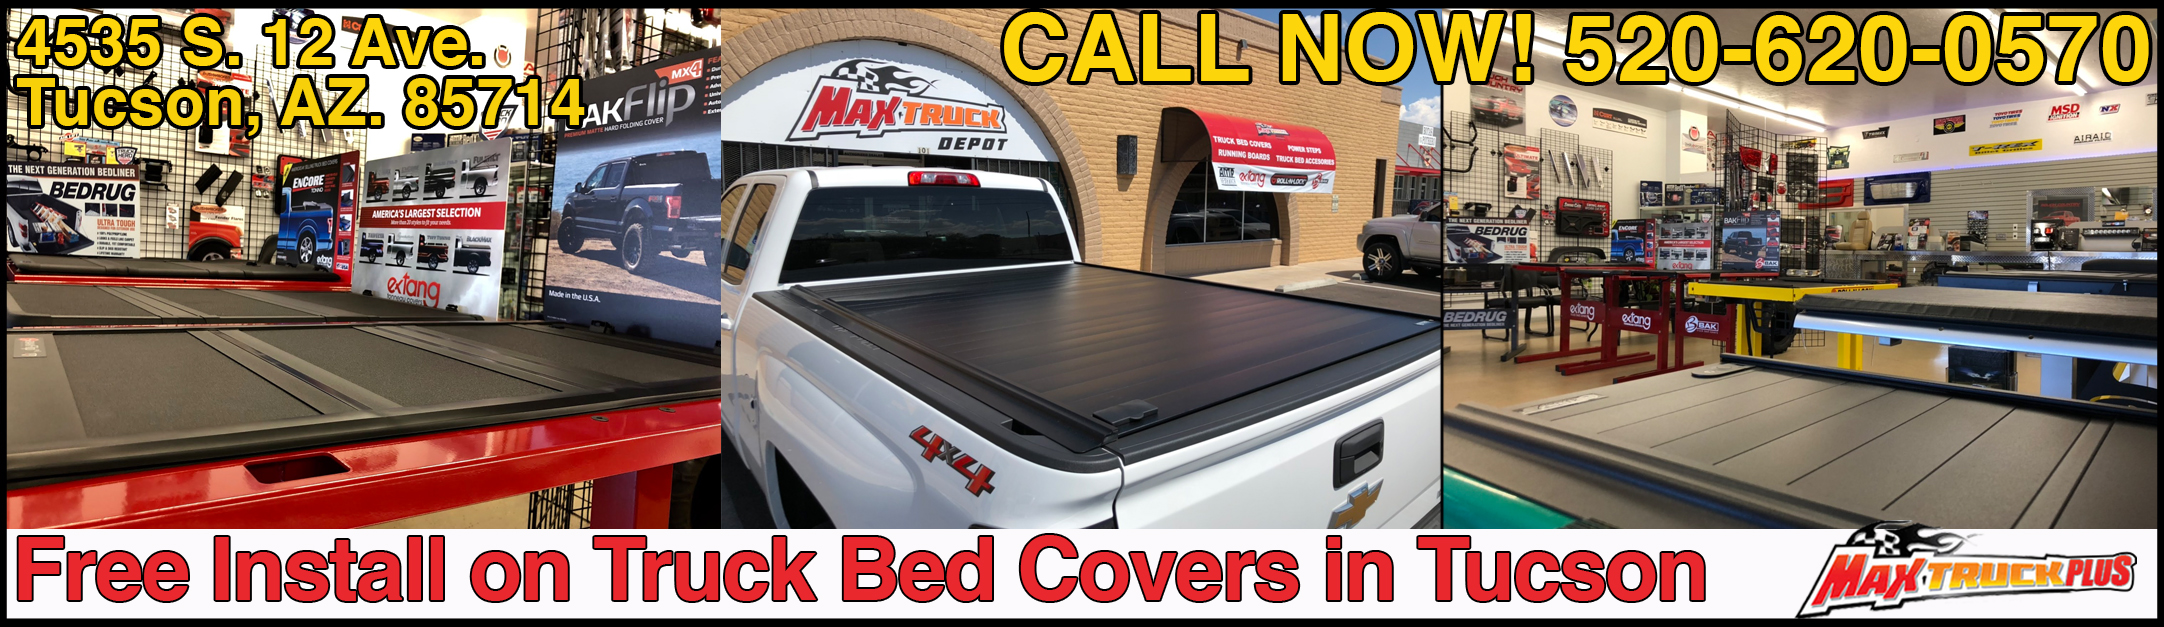 truck bed covers in tucson arizona 85714